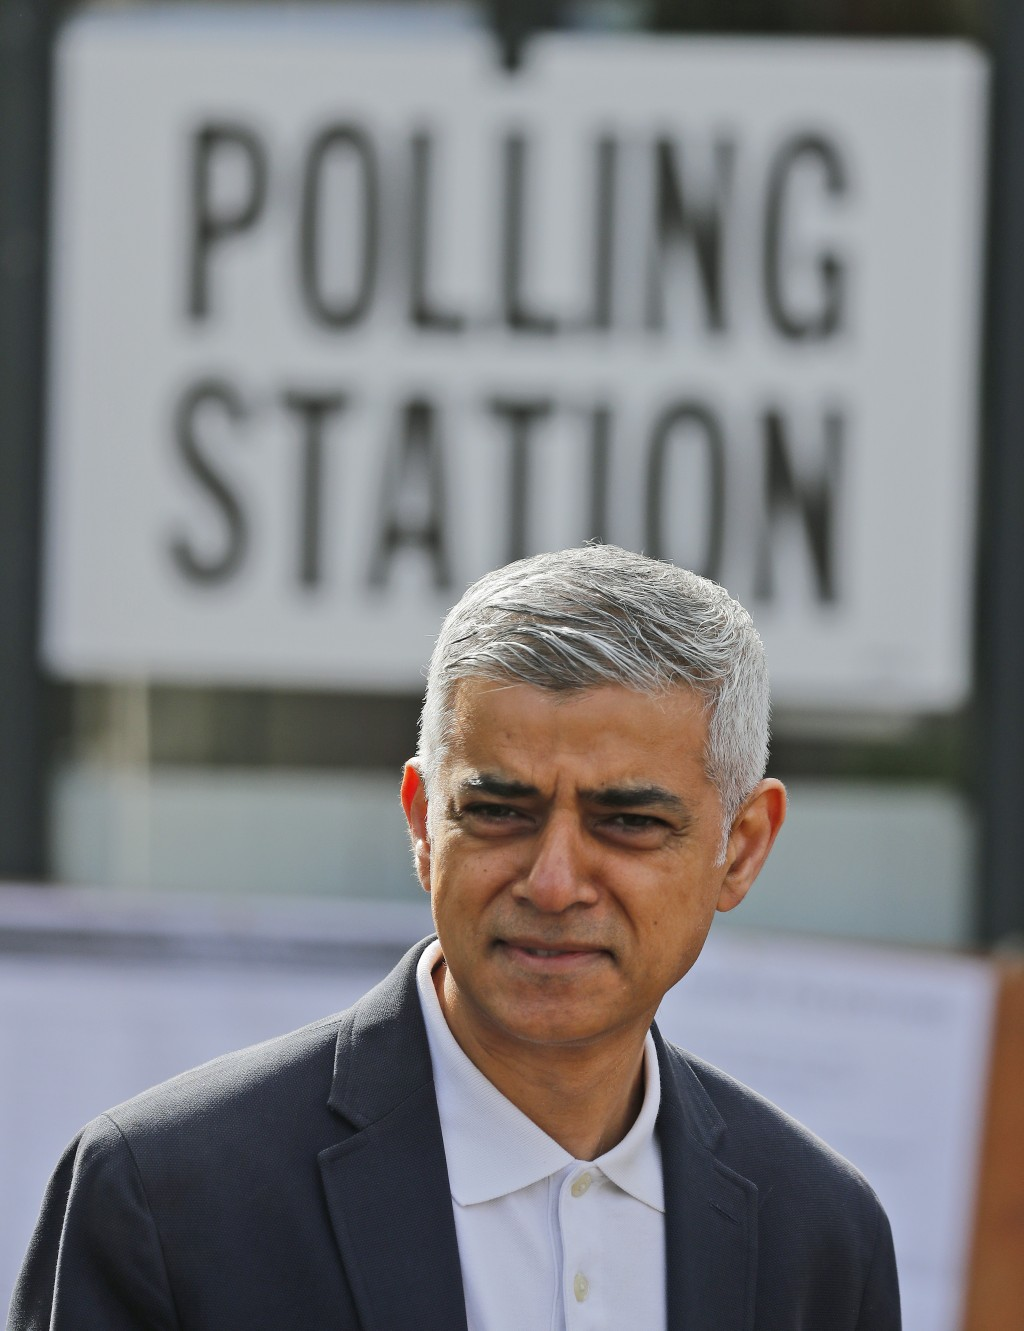 Mayor of London Sadiq Khan leaves the polling station after casting his ballot, at St Albans Church in London, Thursday, May 6, 2021. Millions of peop...